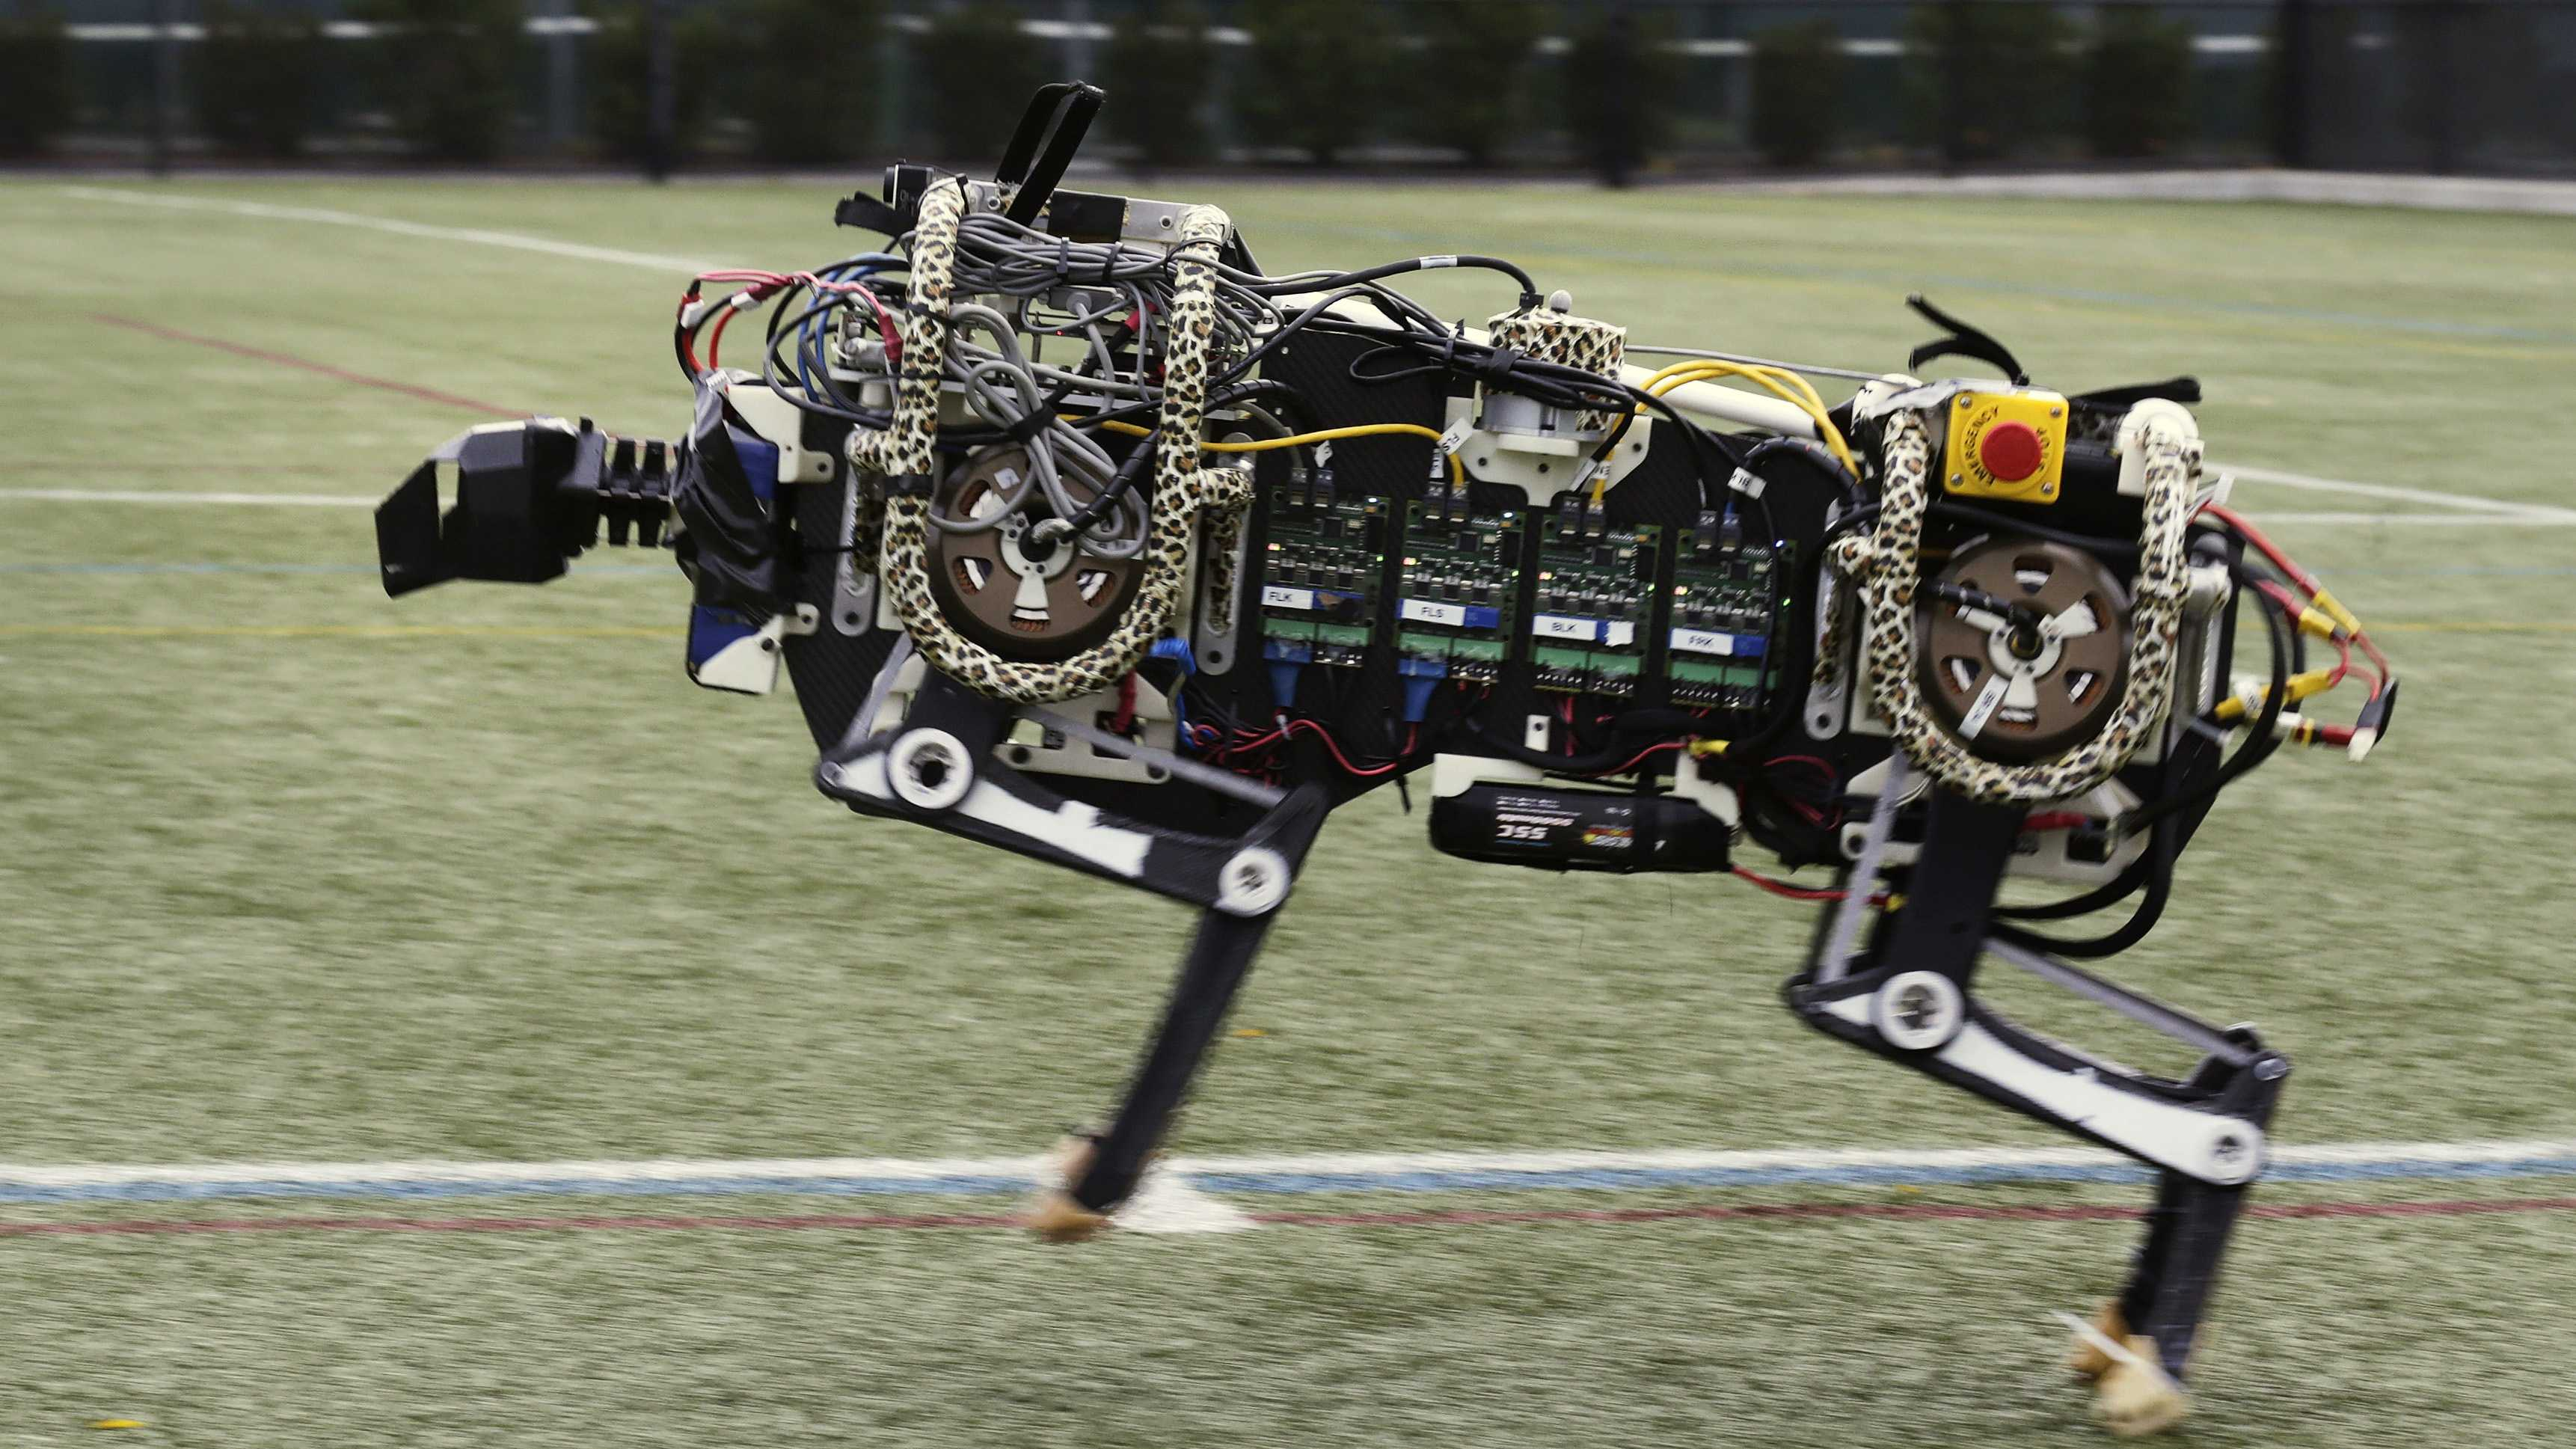 In this Oct. 24, 2014 photo, a robotic cheetah runs on an athletic field at the Massachusetts Institute of Technology in Cambridge, Mass. MIT scientists said the robot, modeled after the fastest land animal, may have real-world applications, including for prosthetic legs.